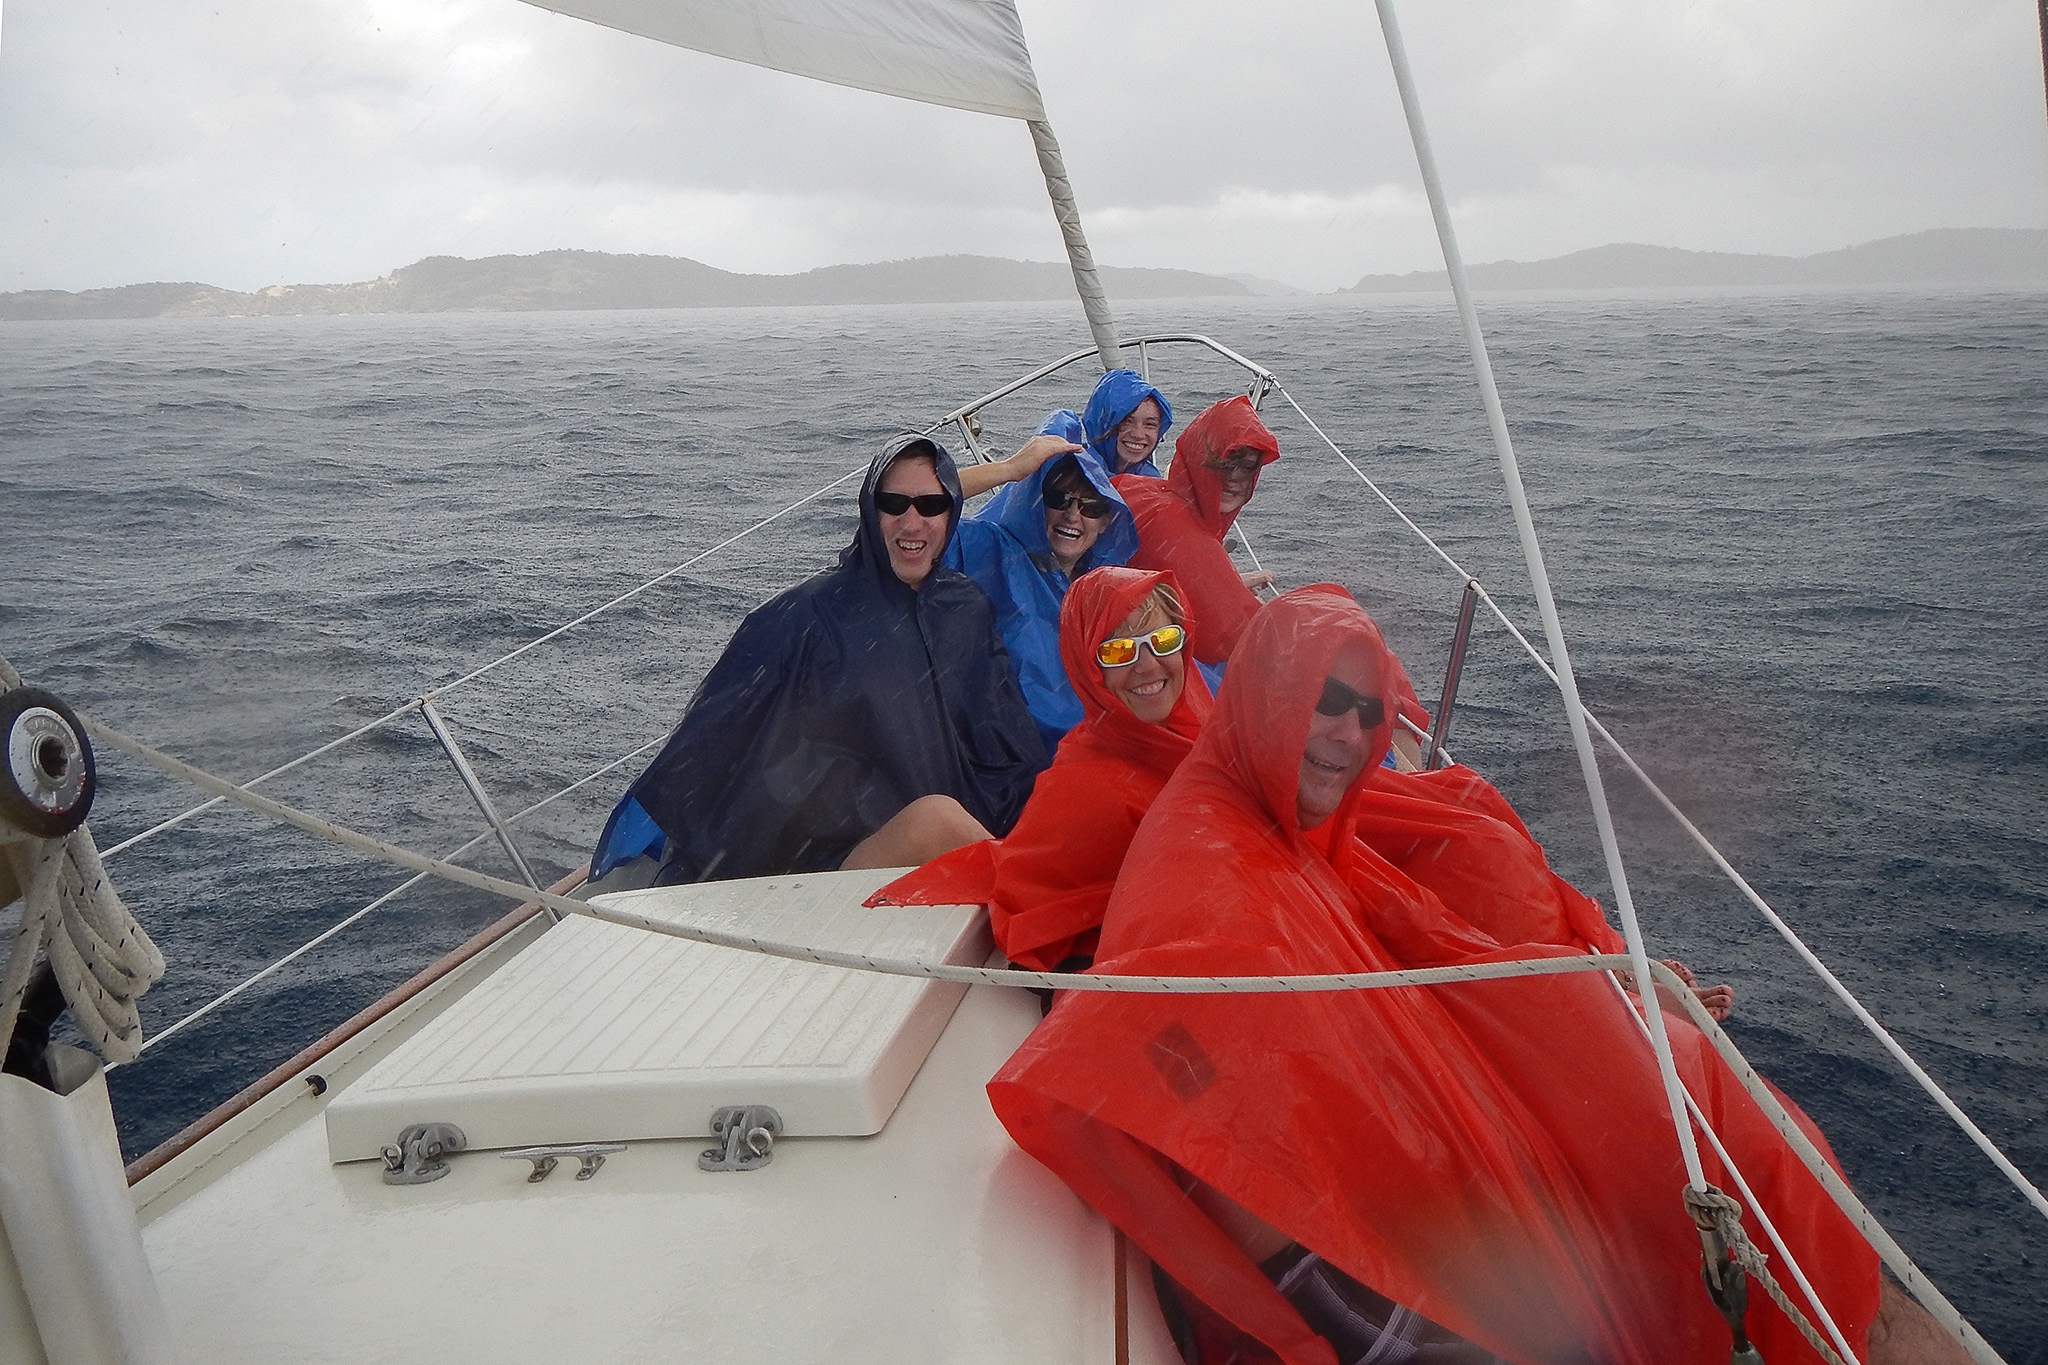 "Bonding on Calabaza in St Thomas during a squall with new friends we met ""online"" and shared a sailboat charter with. (I promise the sun was out for most of it!)"